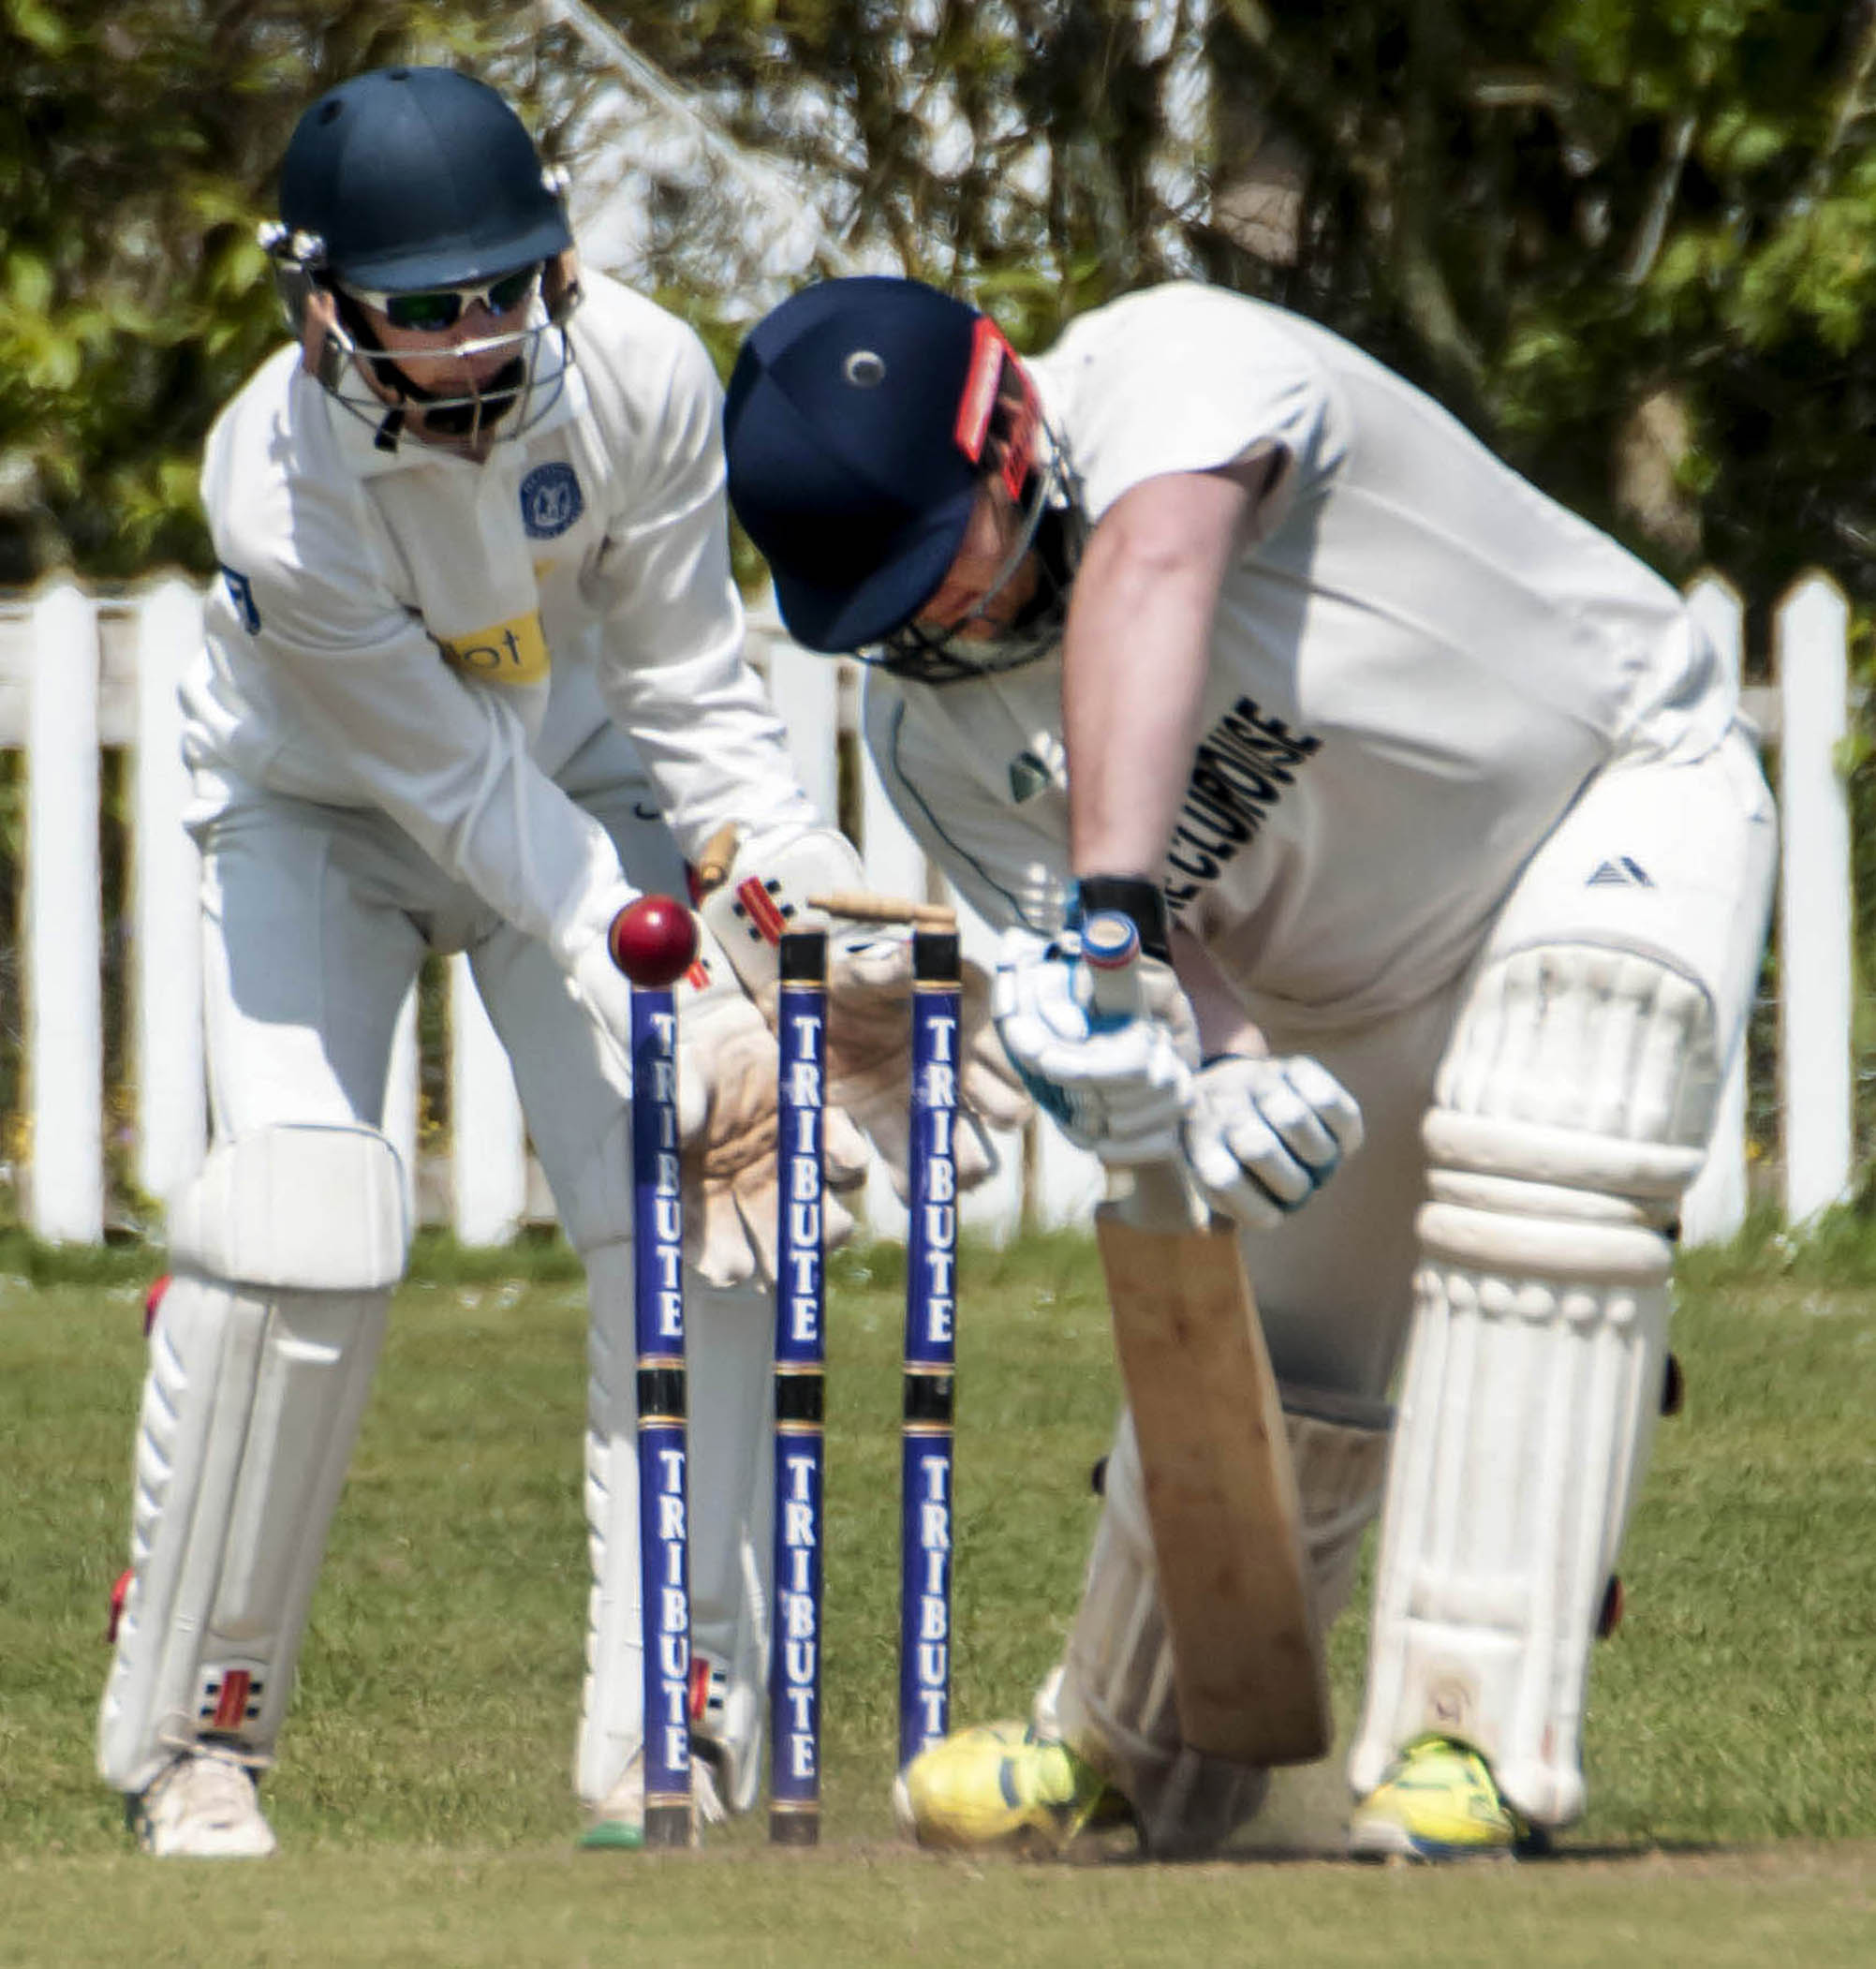 Rosudgeon batsman James Williamson is dismissed for a duck during their three-wicket defeat to Helston on Saturday